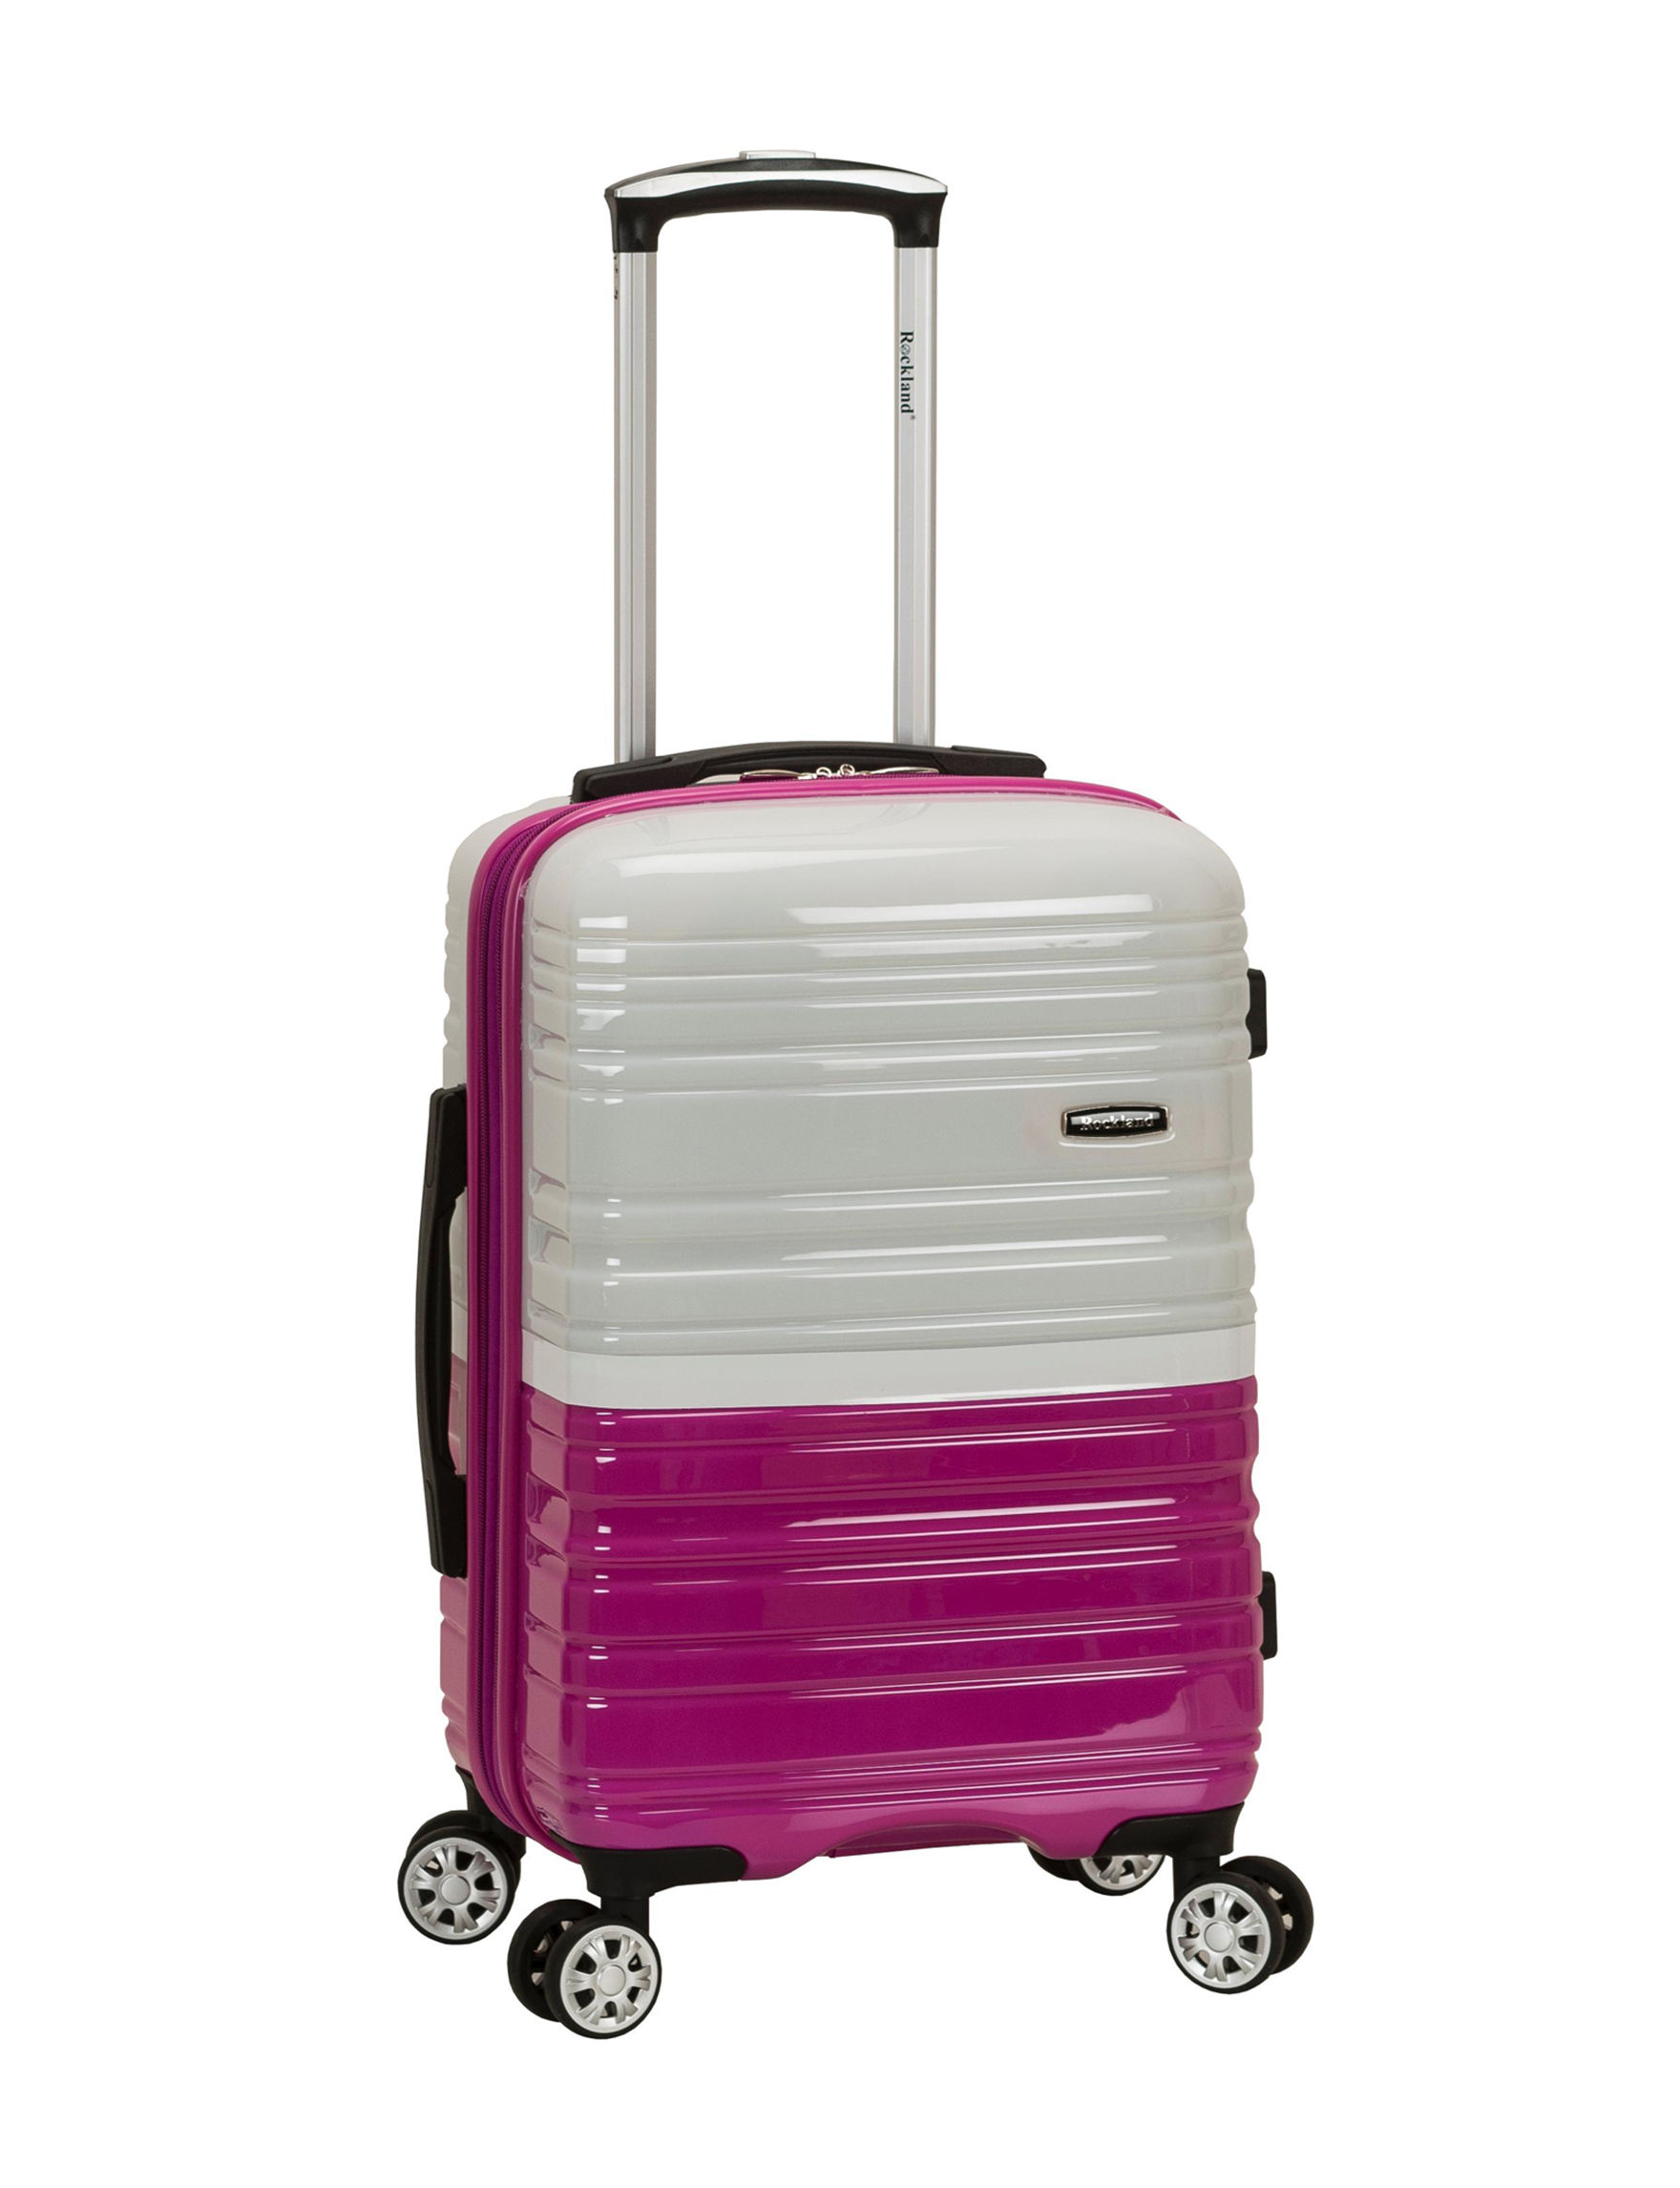 Rockland Pink / White Carry On Luggage